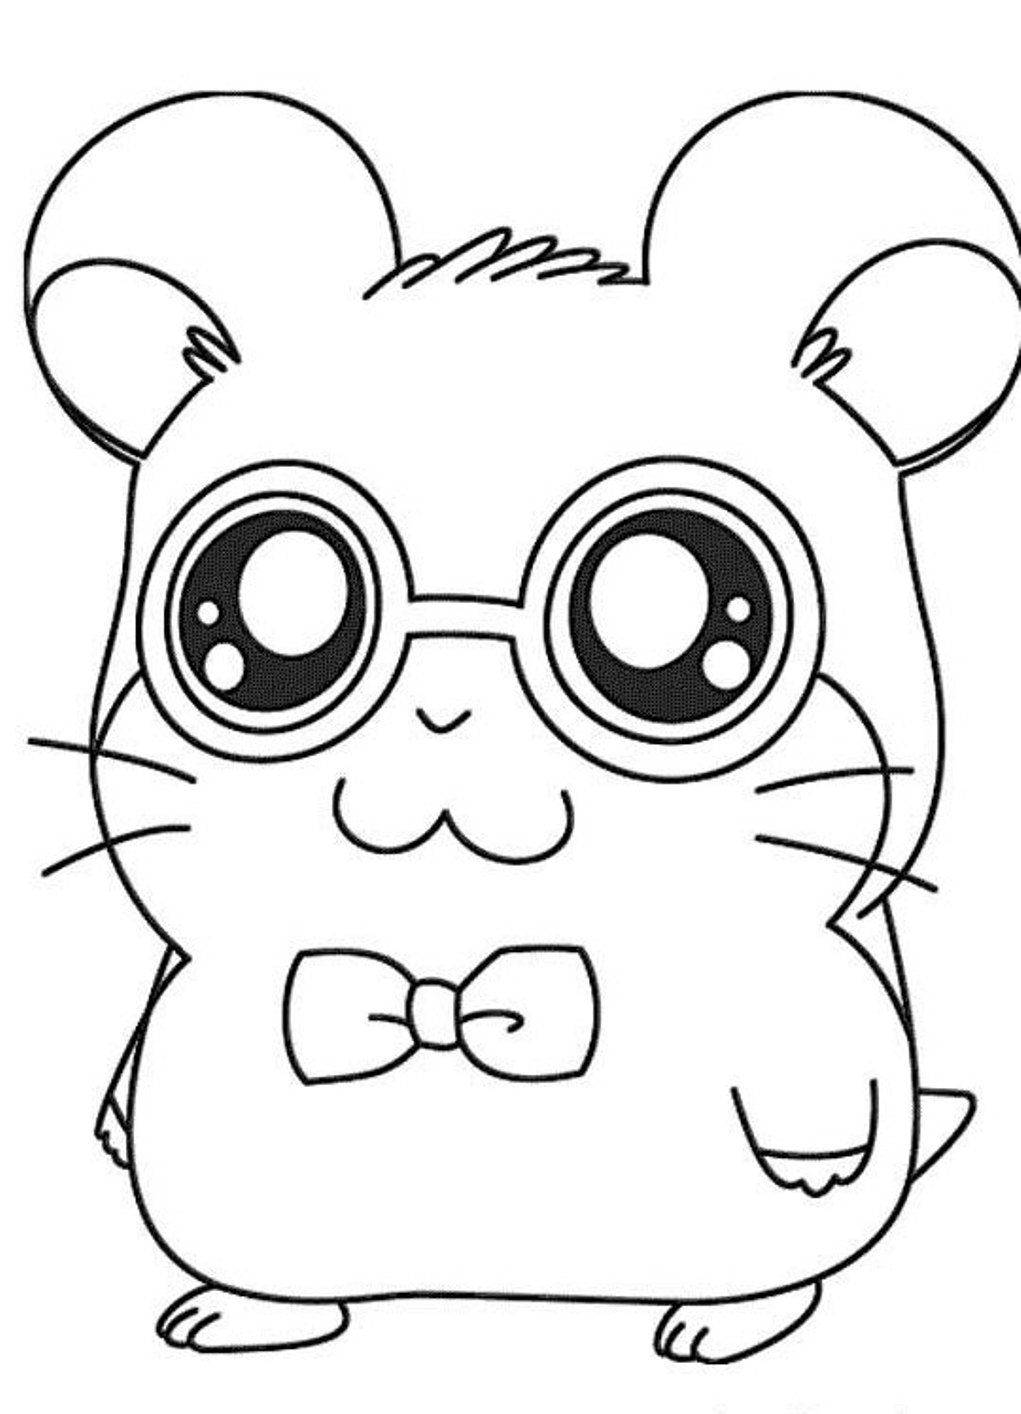 coloring pages that are cute cute food coloring pages az coloring pages